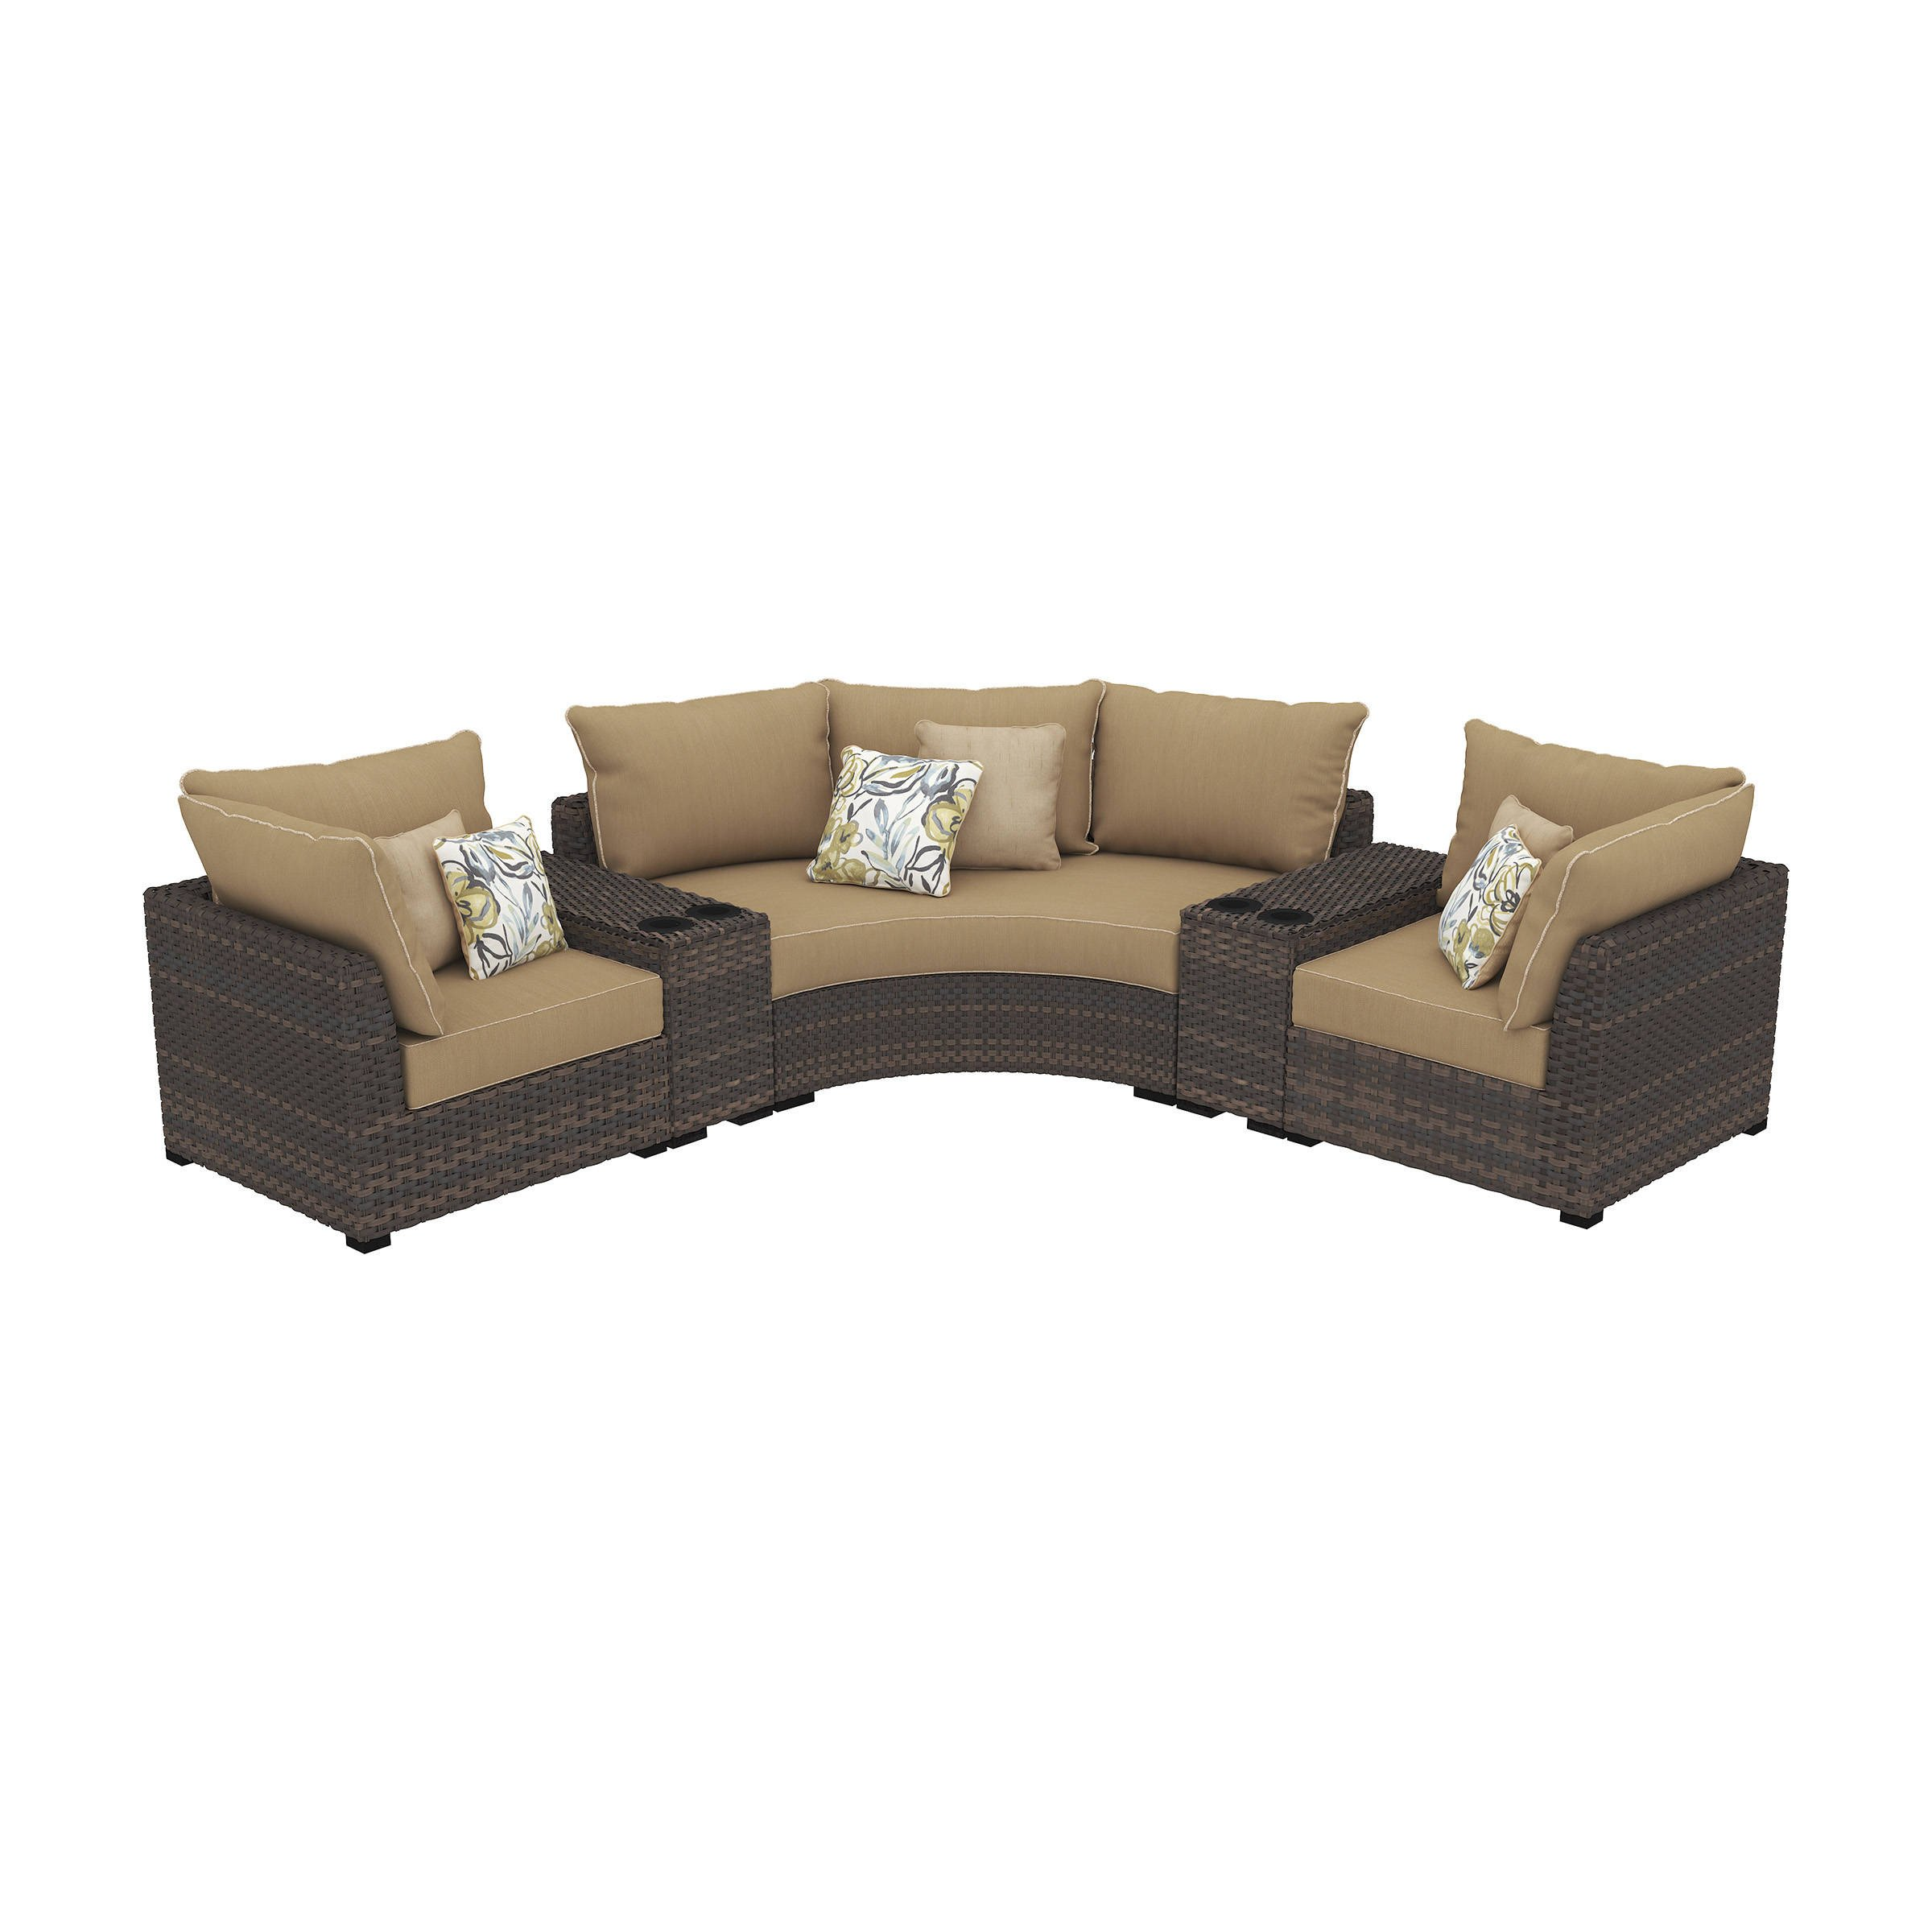 Ashley Furniture Kids Bedroom Fresh ashley Furniture Spring Ridge Beige 5pc Outdoor Sectional